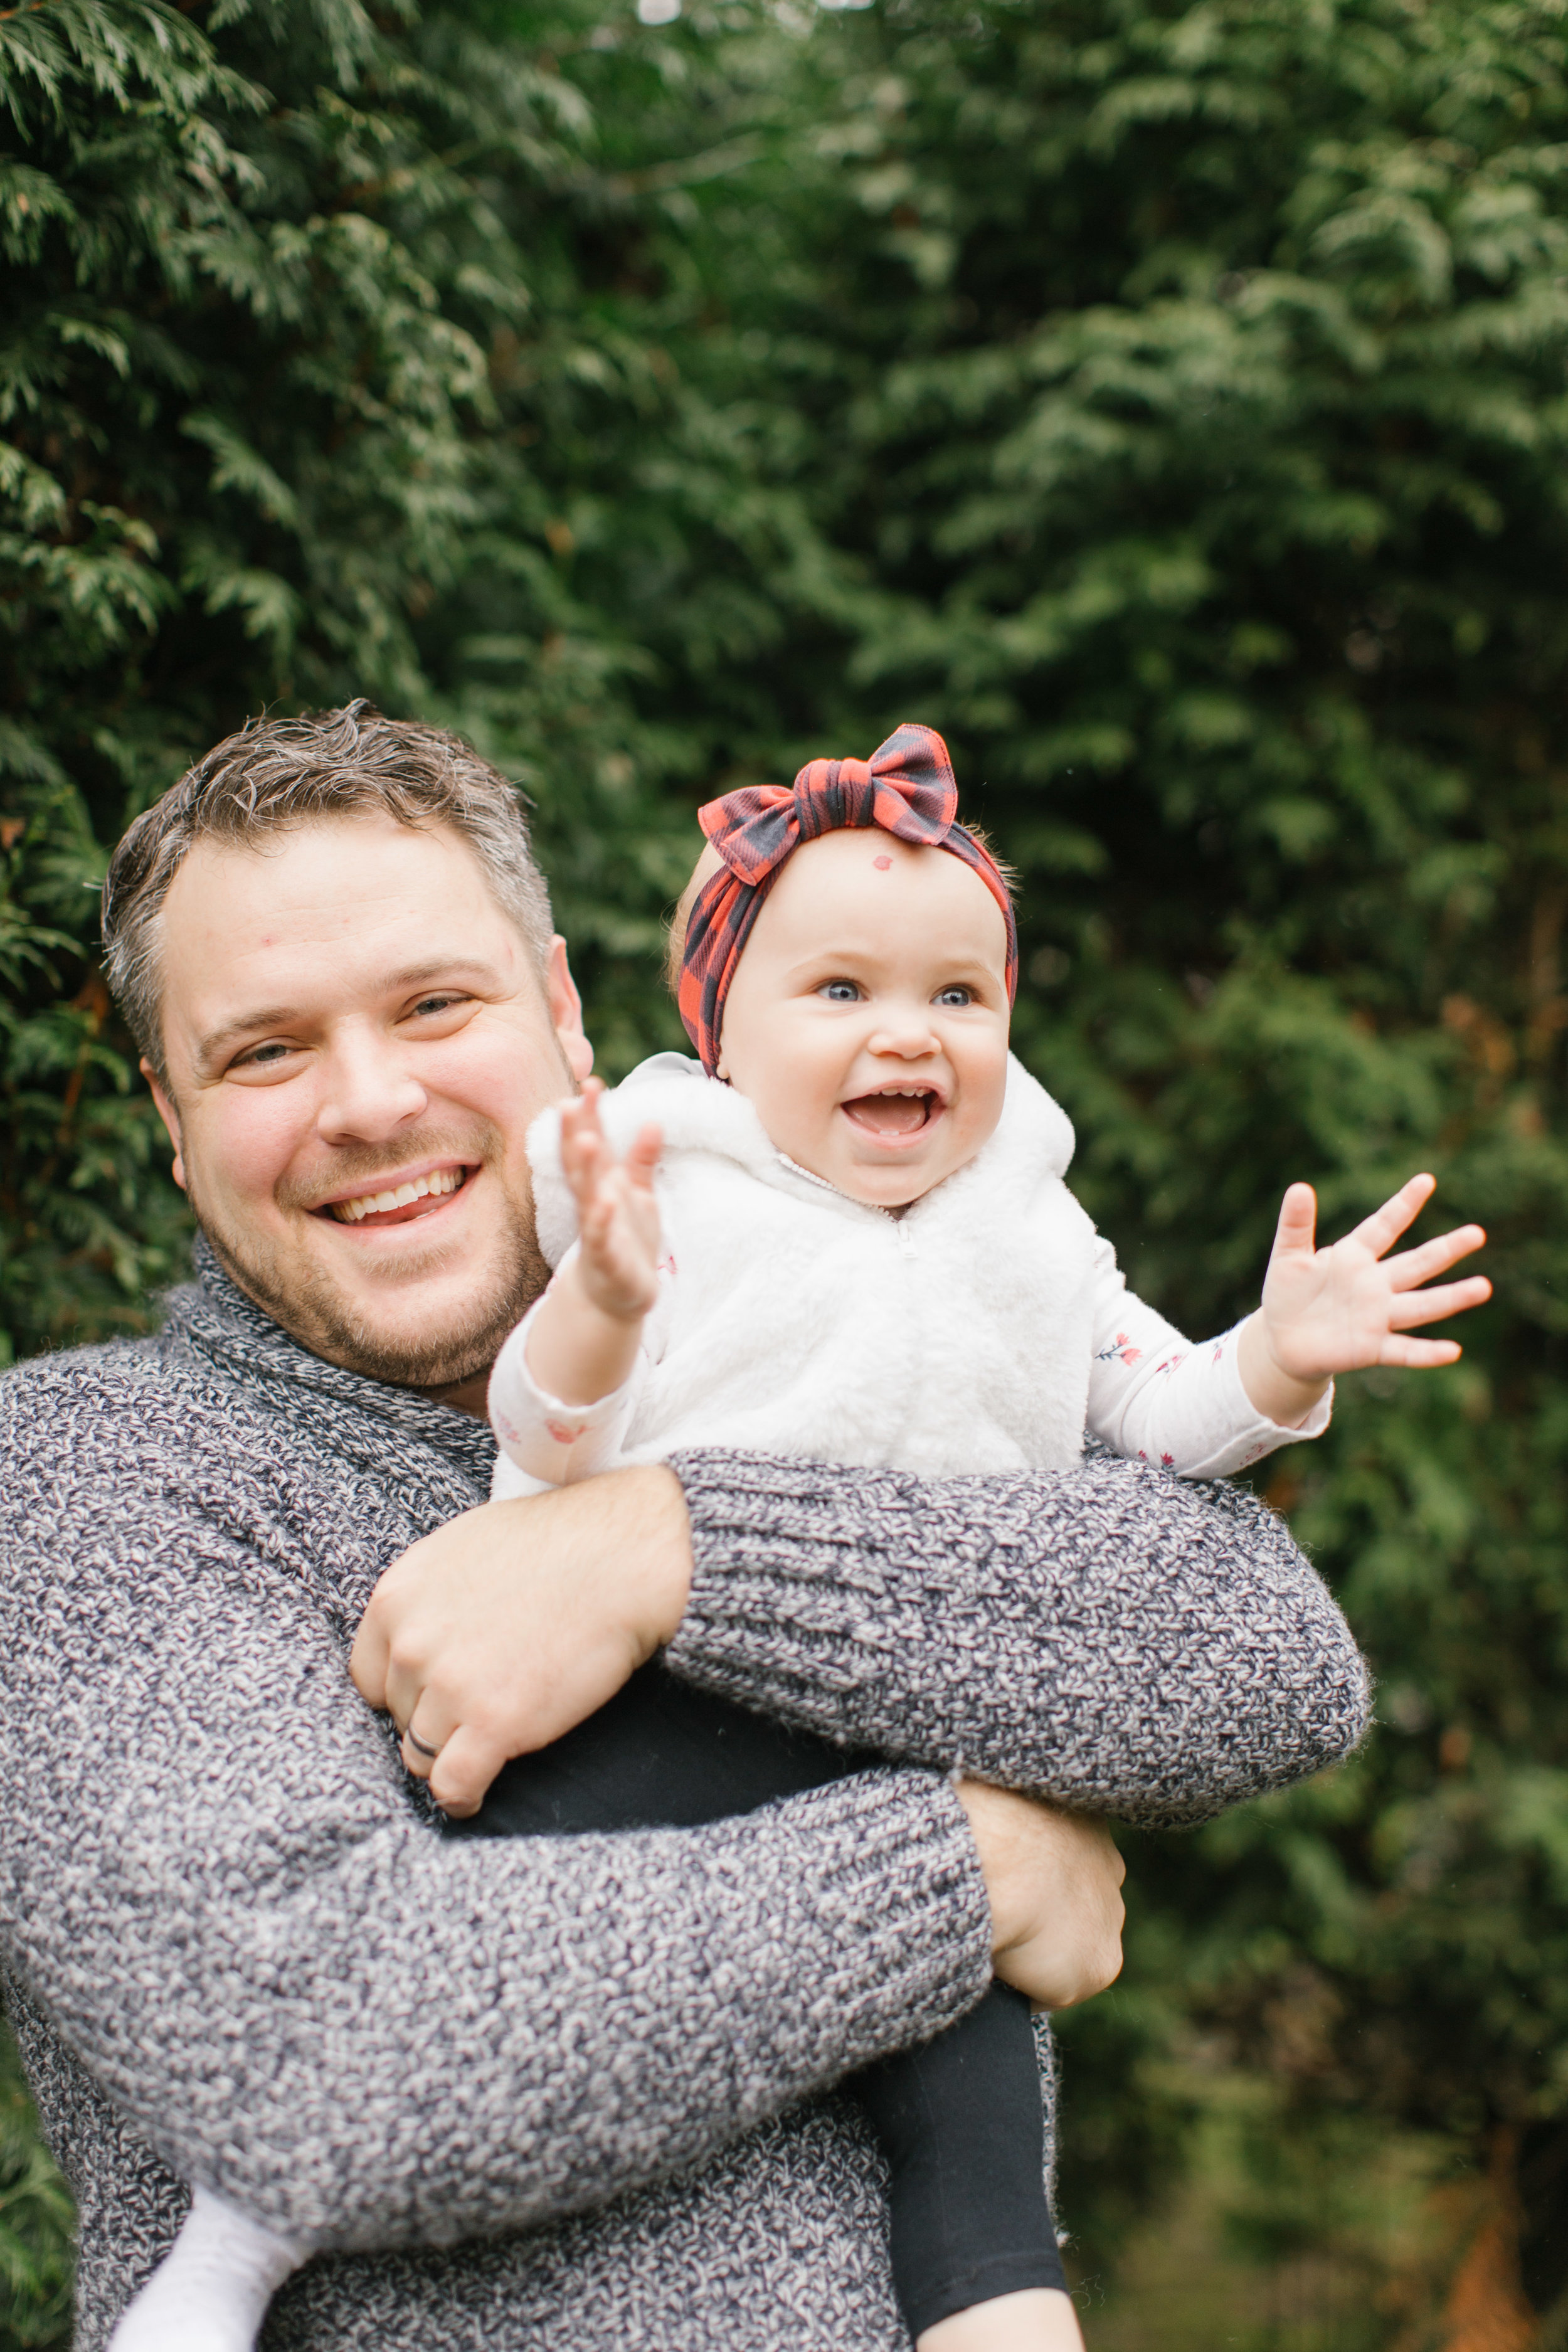 Natural light sweet family at home lifestlyle photography seattle bellevue kirkland WA Chelsea Macor Photography-32.jpg